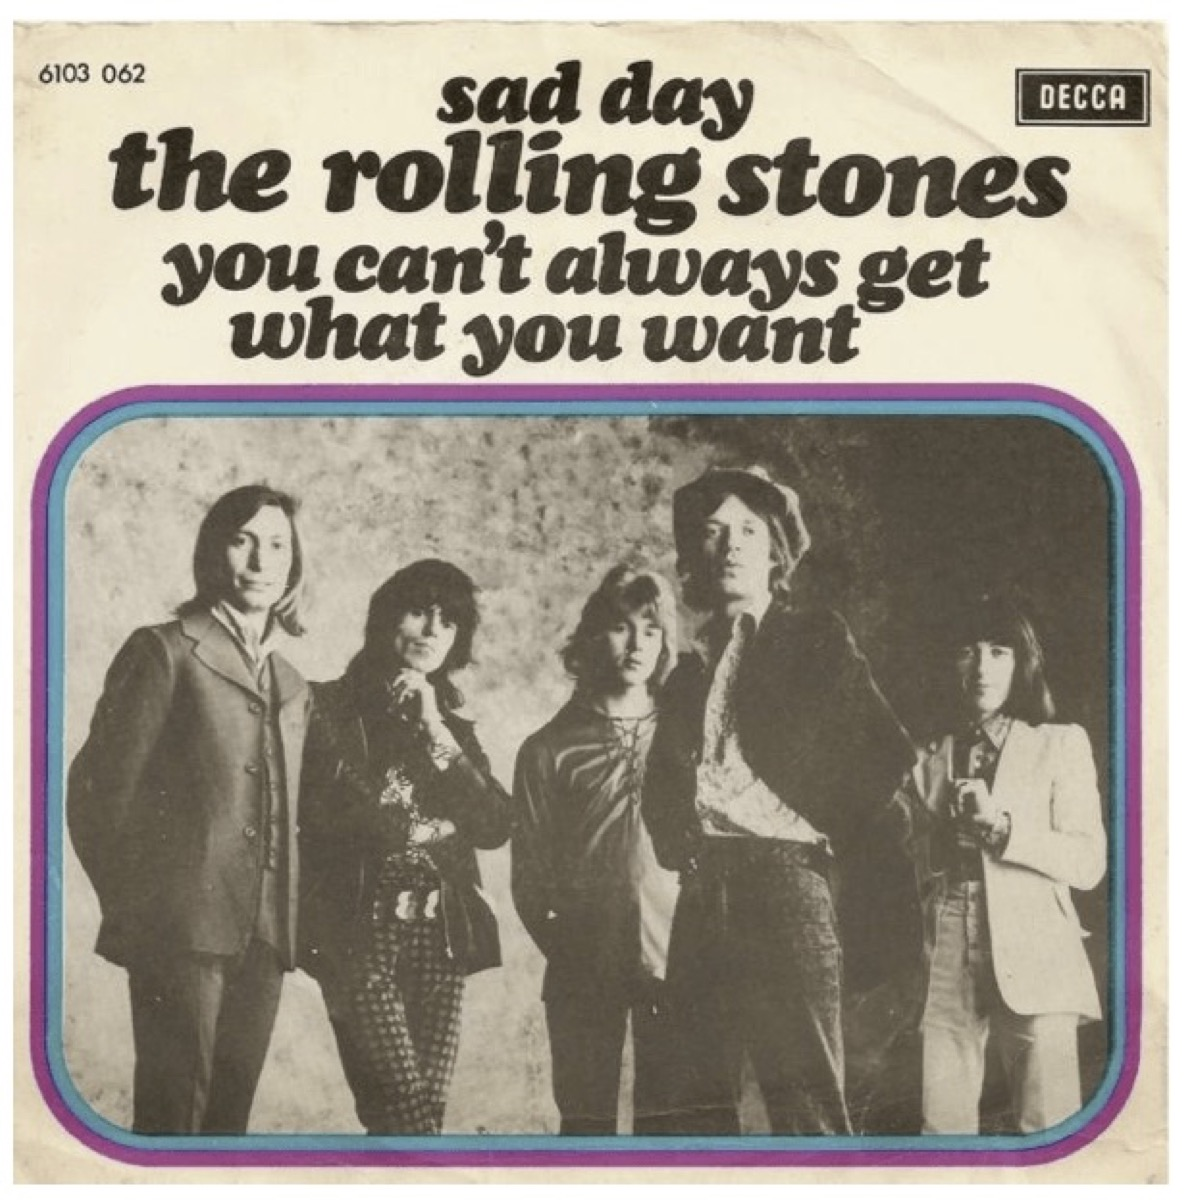 You Can't Always Get What You Want by The Rolling Stones